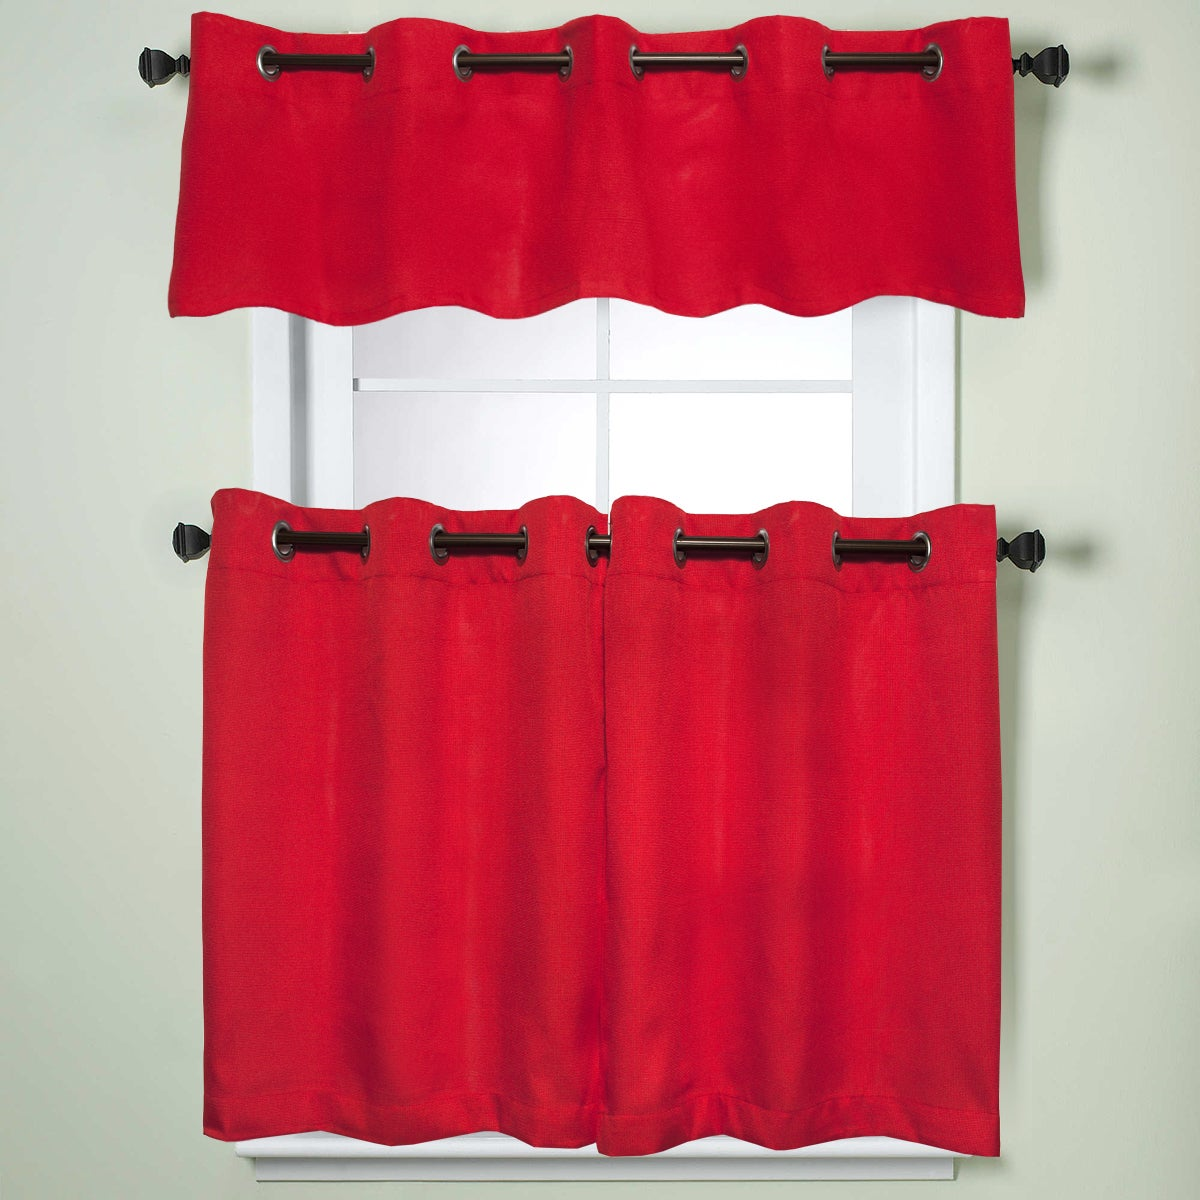 Shop modern subtle texture solid red kitchen curtain parts with grommets tier and valance options on sale free shipping on orders over 45